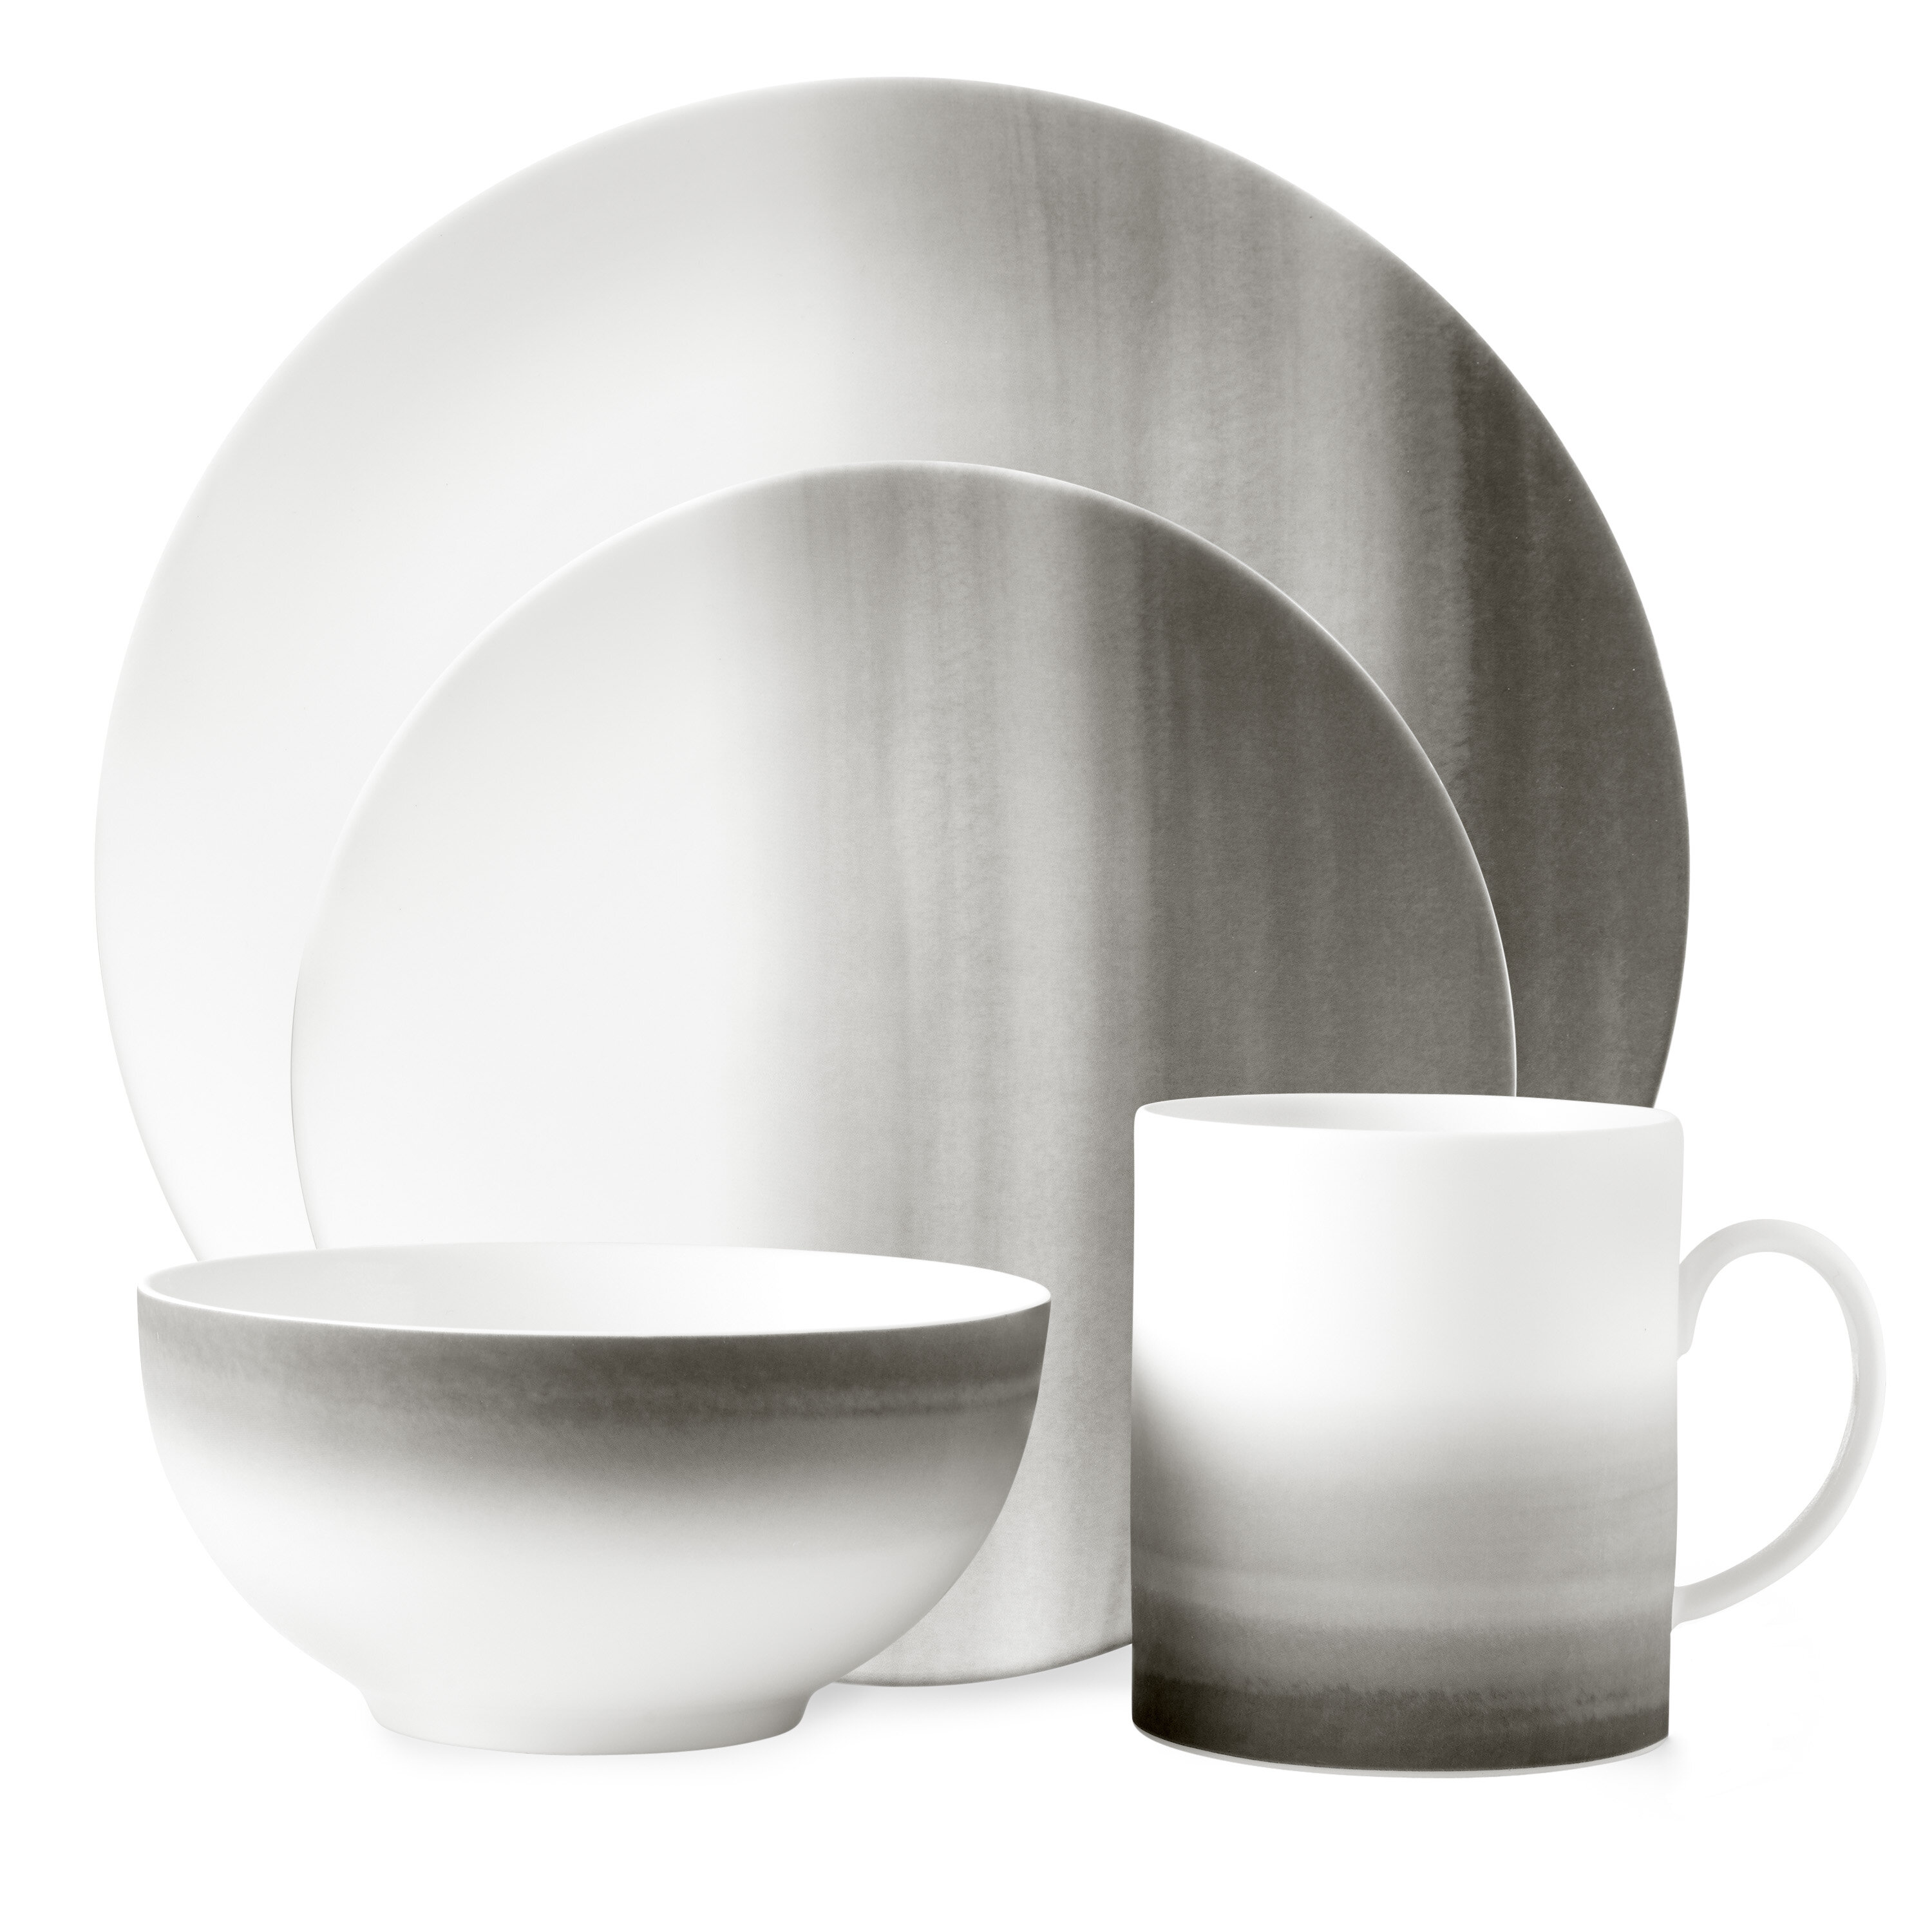 Vera Wang Degradée 4 Piece Bone China Place Setting Set Service For 1 Perigold